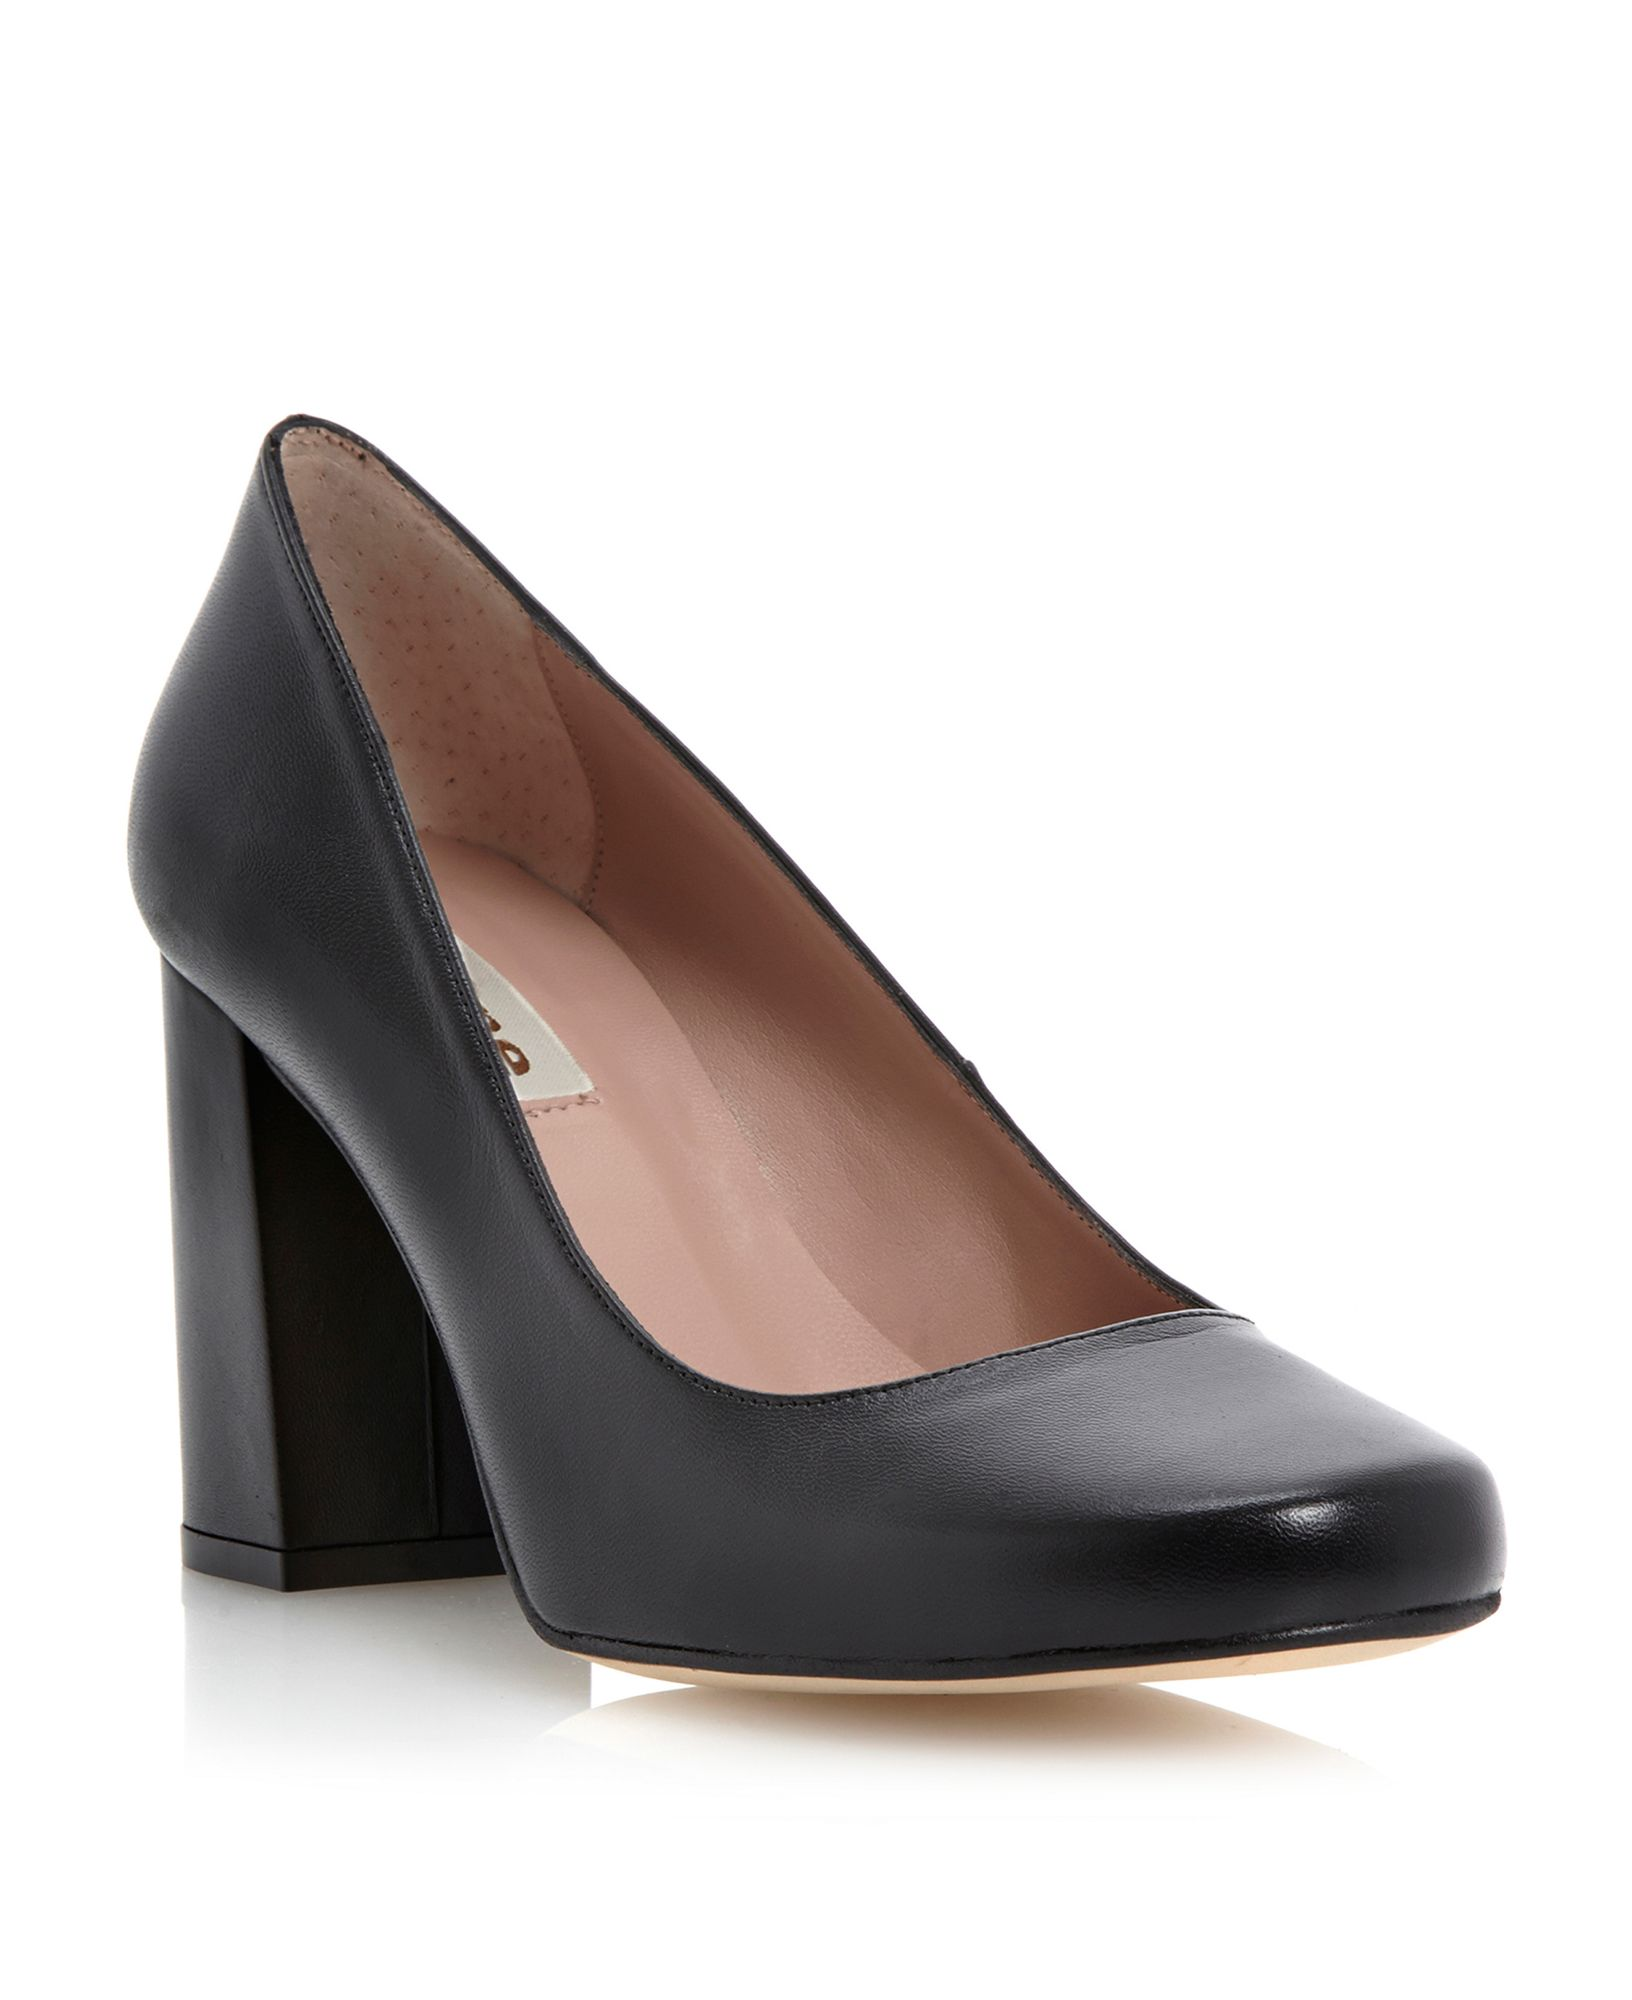 Invest in style and practicality with Dune London's classic court shoes. Round or point toe; kitten or wedge heel shoes. Buy online or collect in store anthea - black Mid Block Heel Court Shoe £ dune london QUICK VIEW anthea - navy Mid Block Heel Court Shoe .